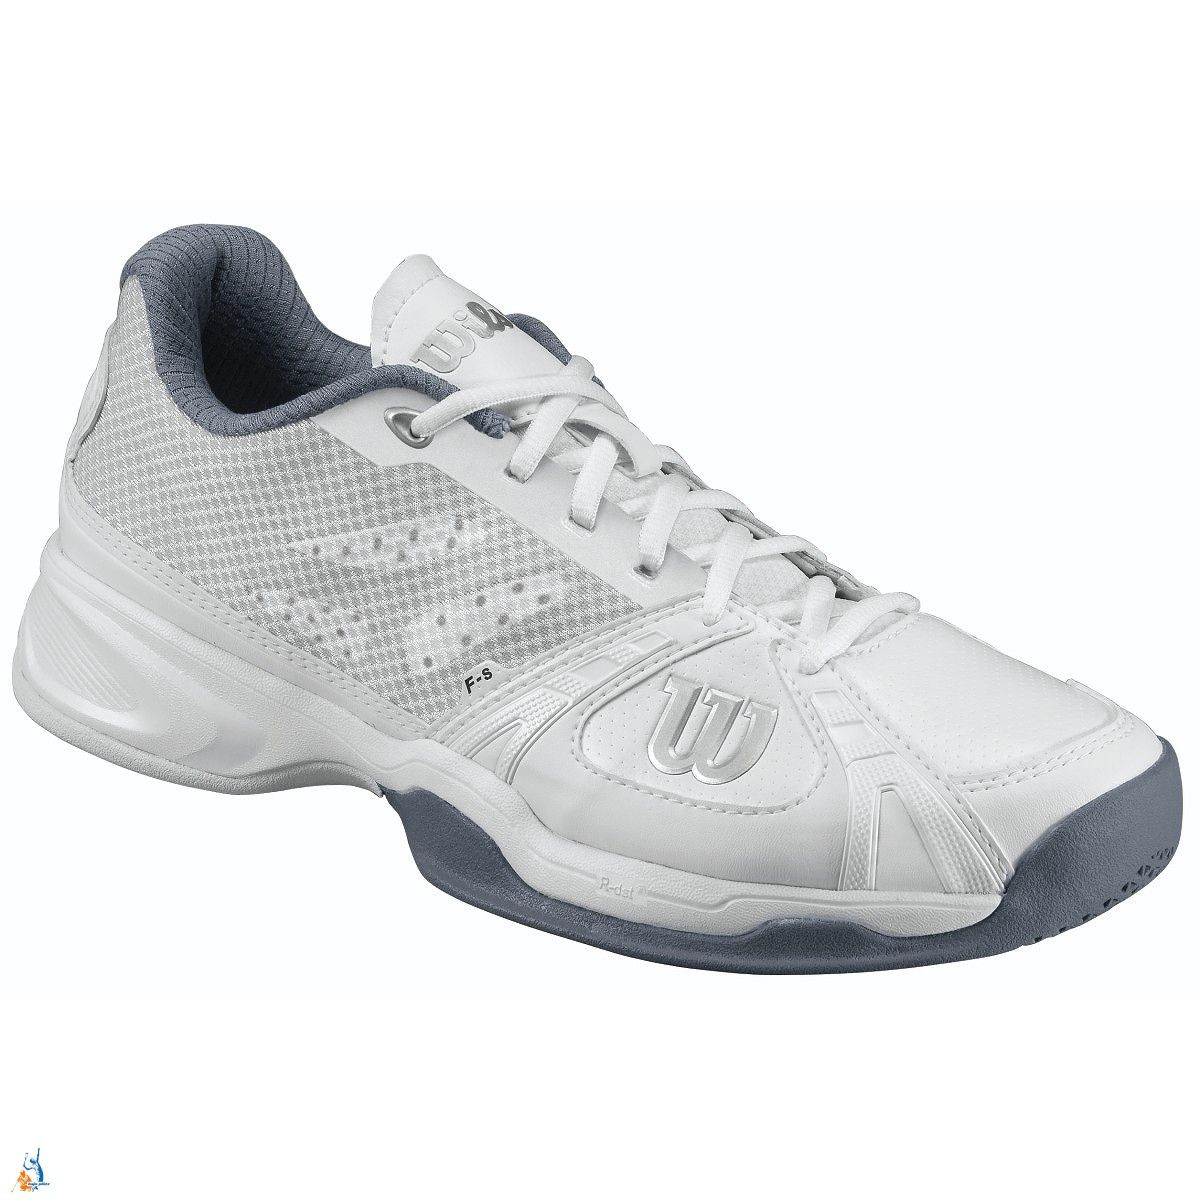 Wilson Rush Hard Court Mens Tennis Shoes - White/Grey